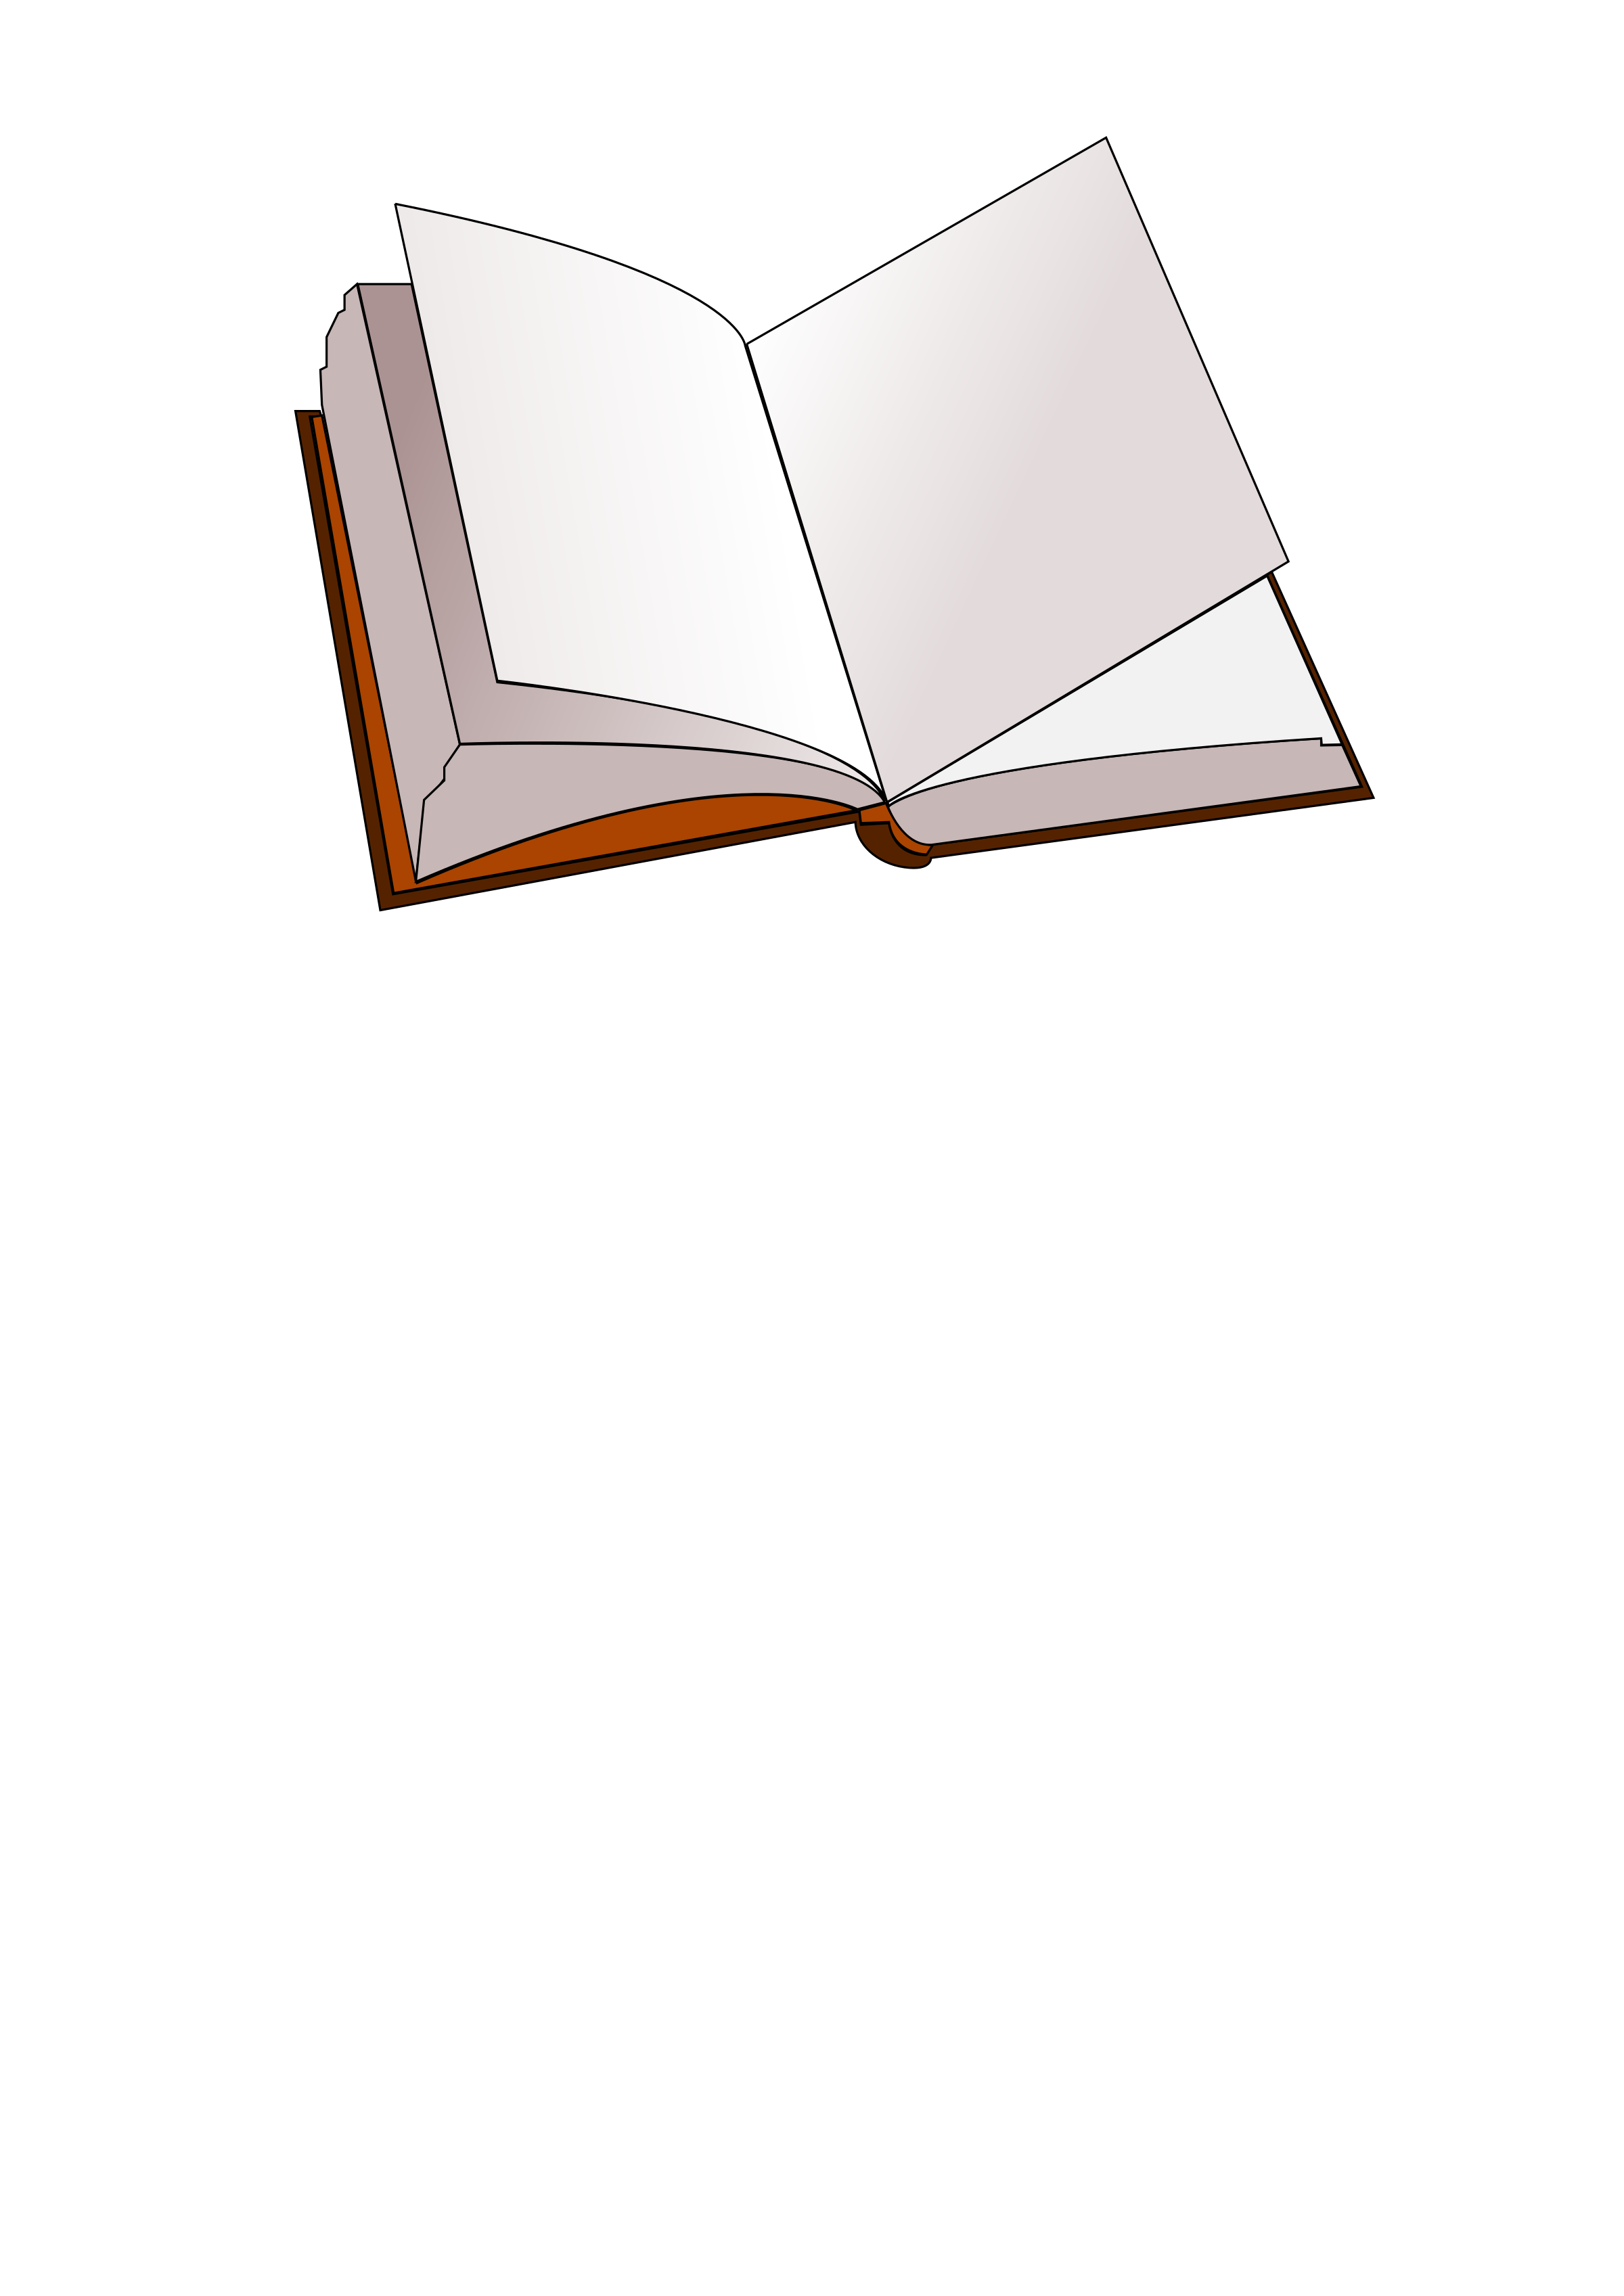 Open book image clipart svg transparent stock Clipart - open book svg transparent stock